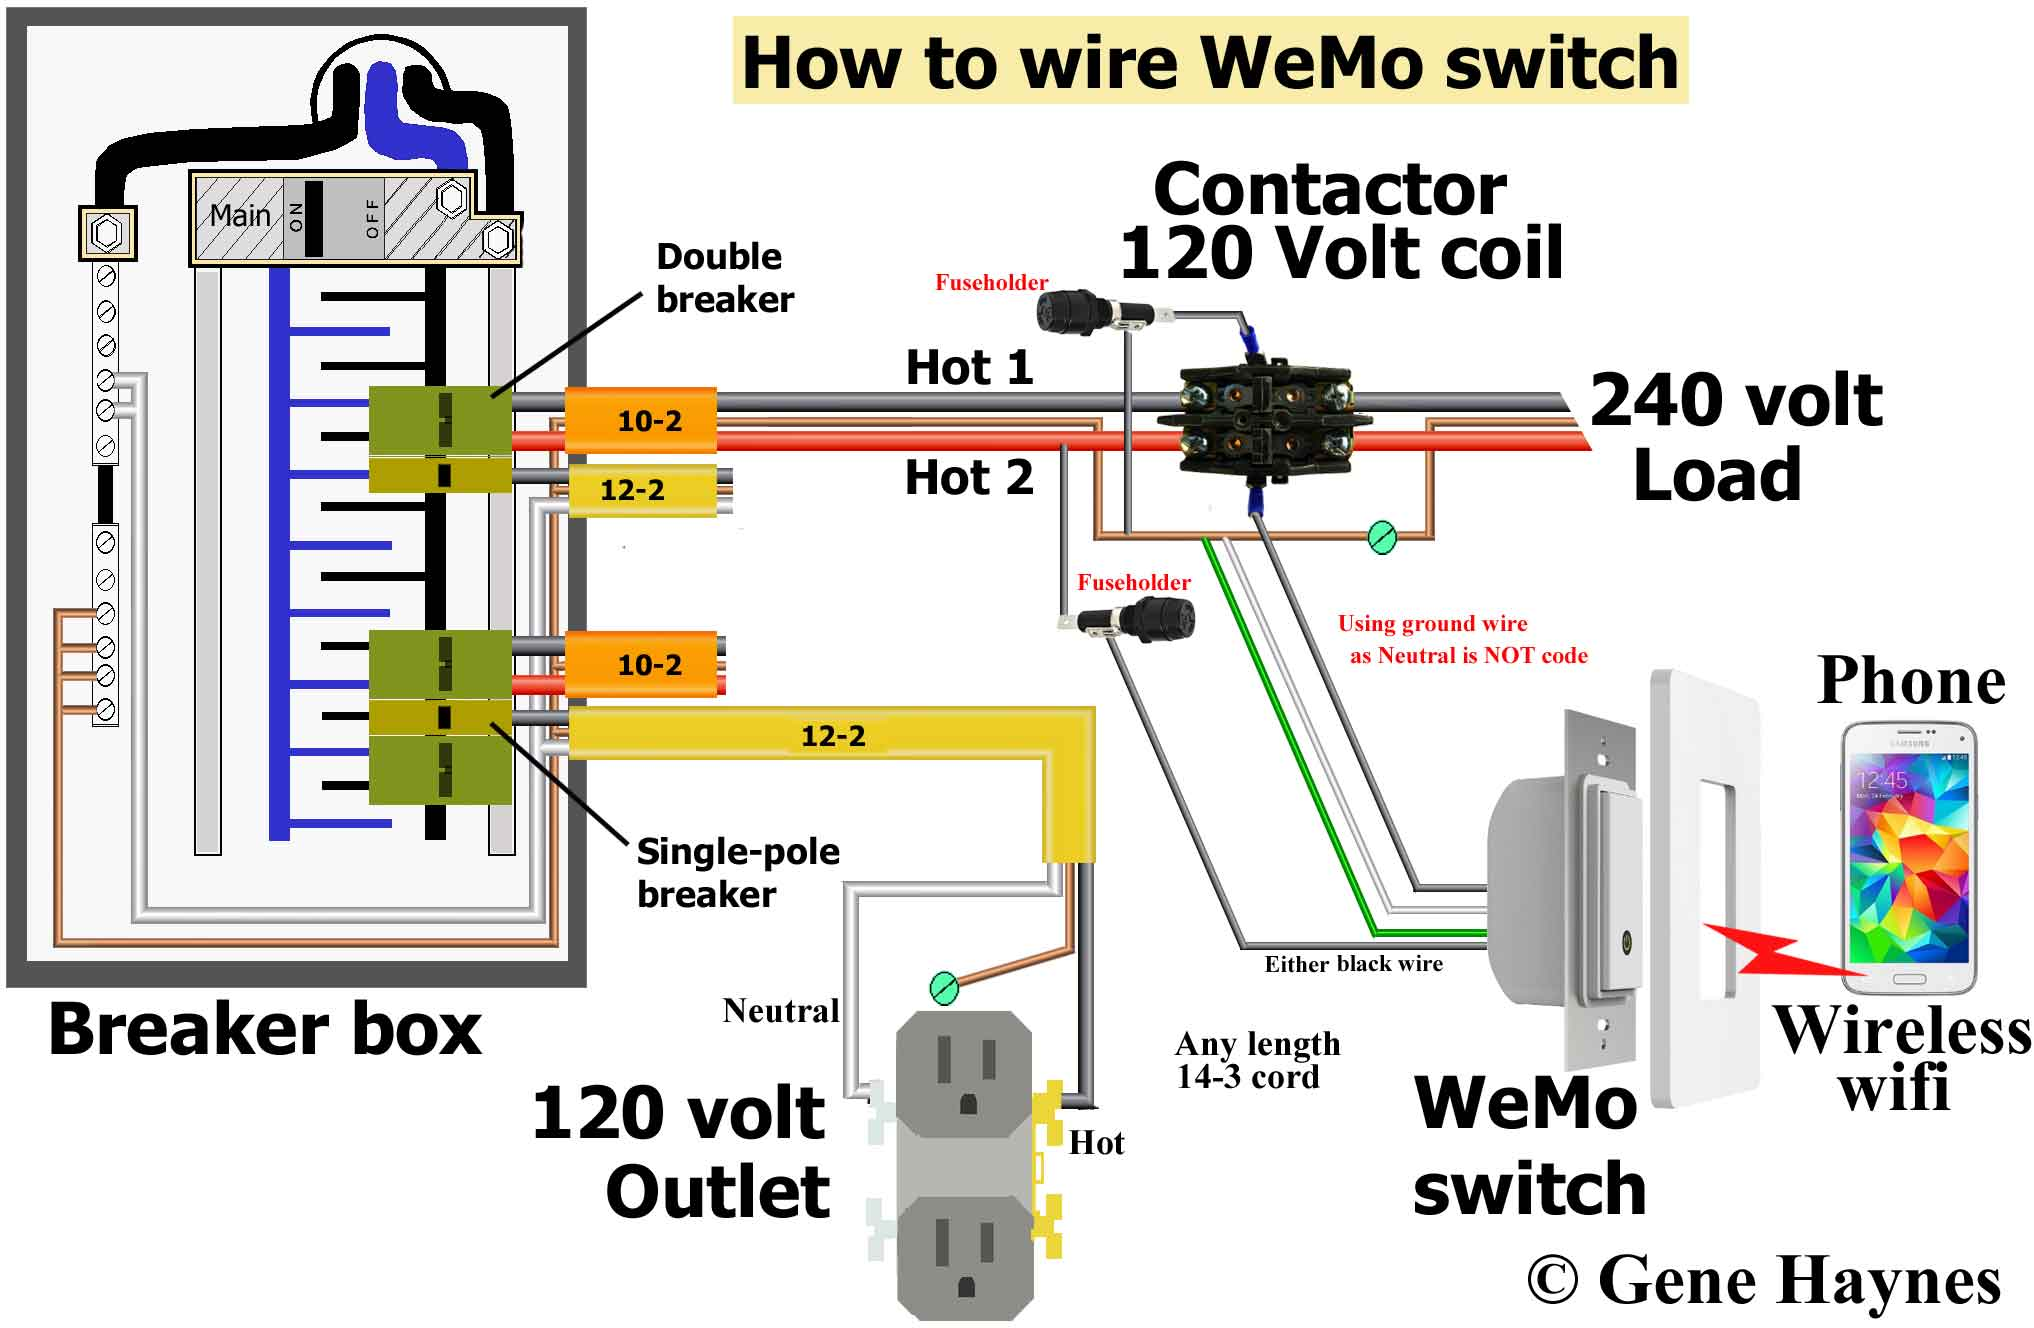 WeMo switch wiring illustration 33 not code wemo switch wiring diagram solenoid switch wiring diagram \u2022 wiring wemo light switch wiring diagram at fashall.co